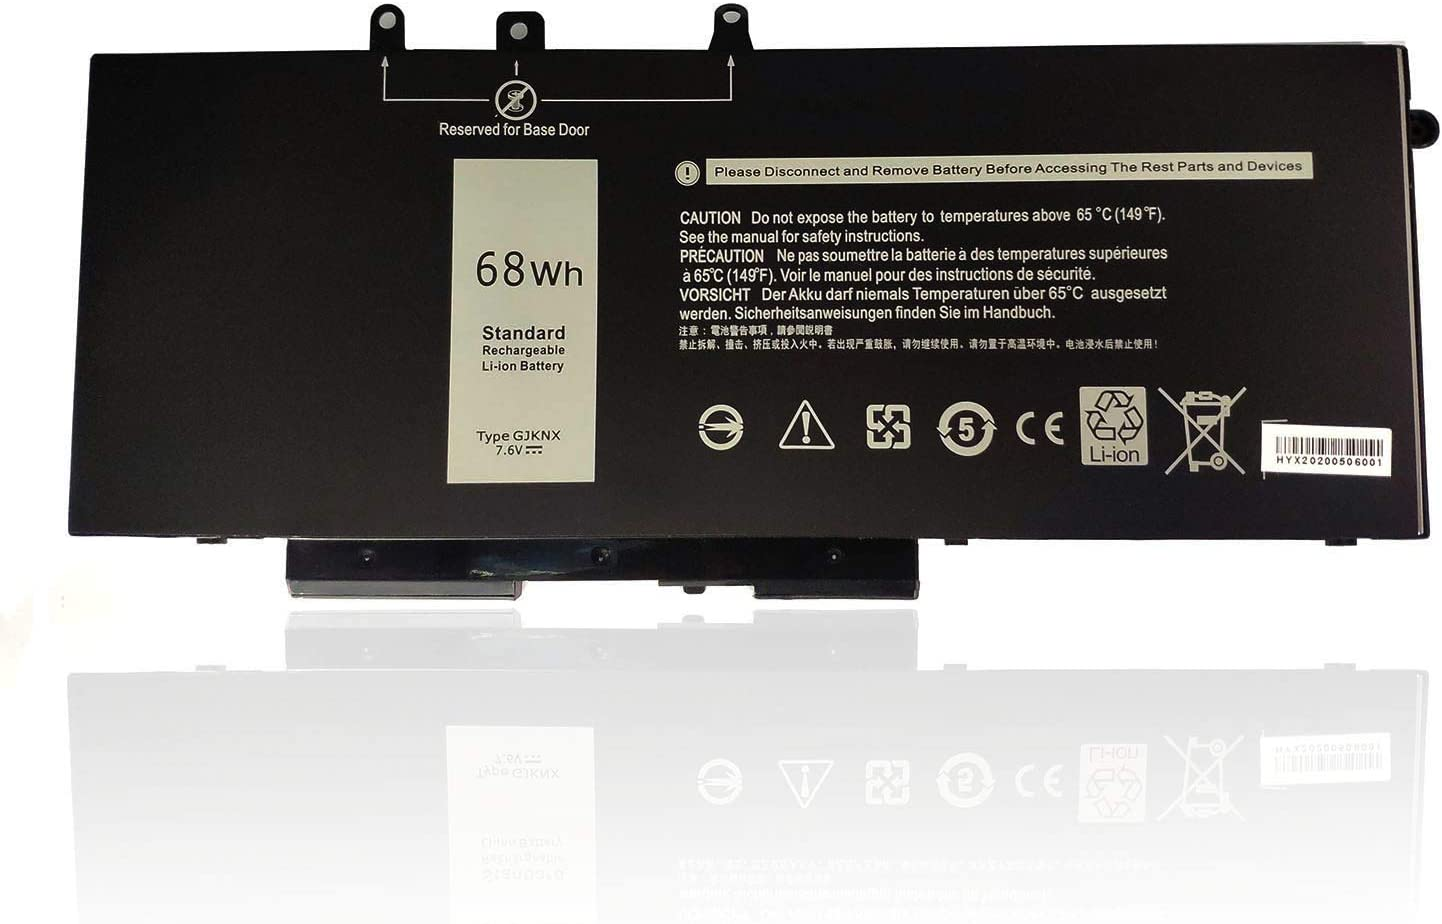 Ding New GJKNX Battery Compatible with Dell Precision 15 3520Latitude E5480 Latitude E5580 Latitude E5490 Latitude E5590 DELL Precision 15 3520(7.6V)